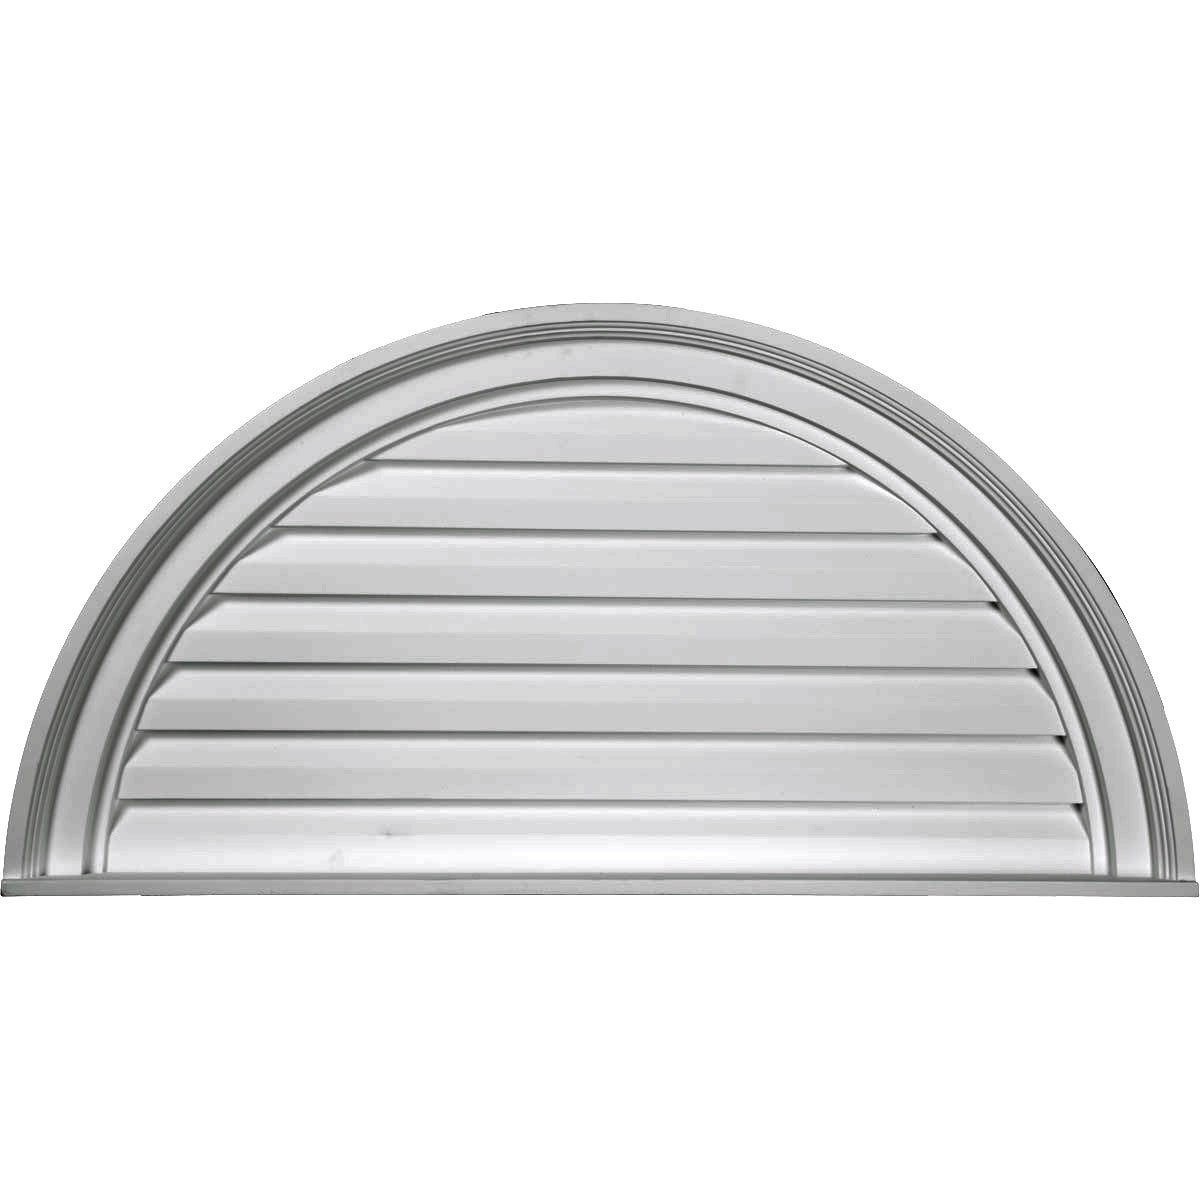 Ekena Millwork GVHR60F 60-Inch x 30-Inch x 2 1/2-Inch , Half Round Gable Vent Louver, Functional